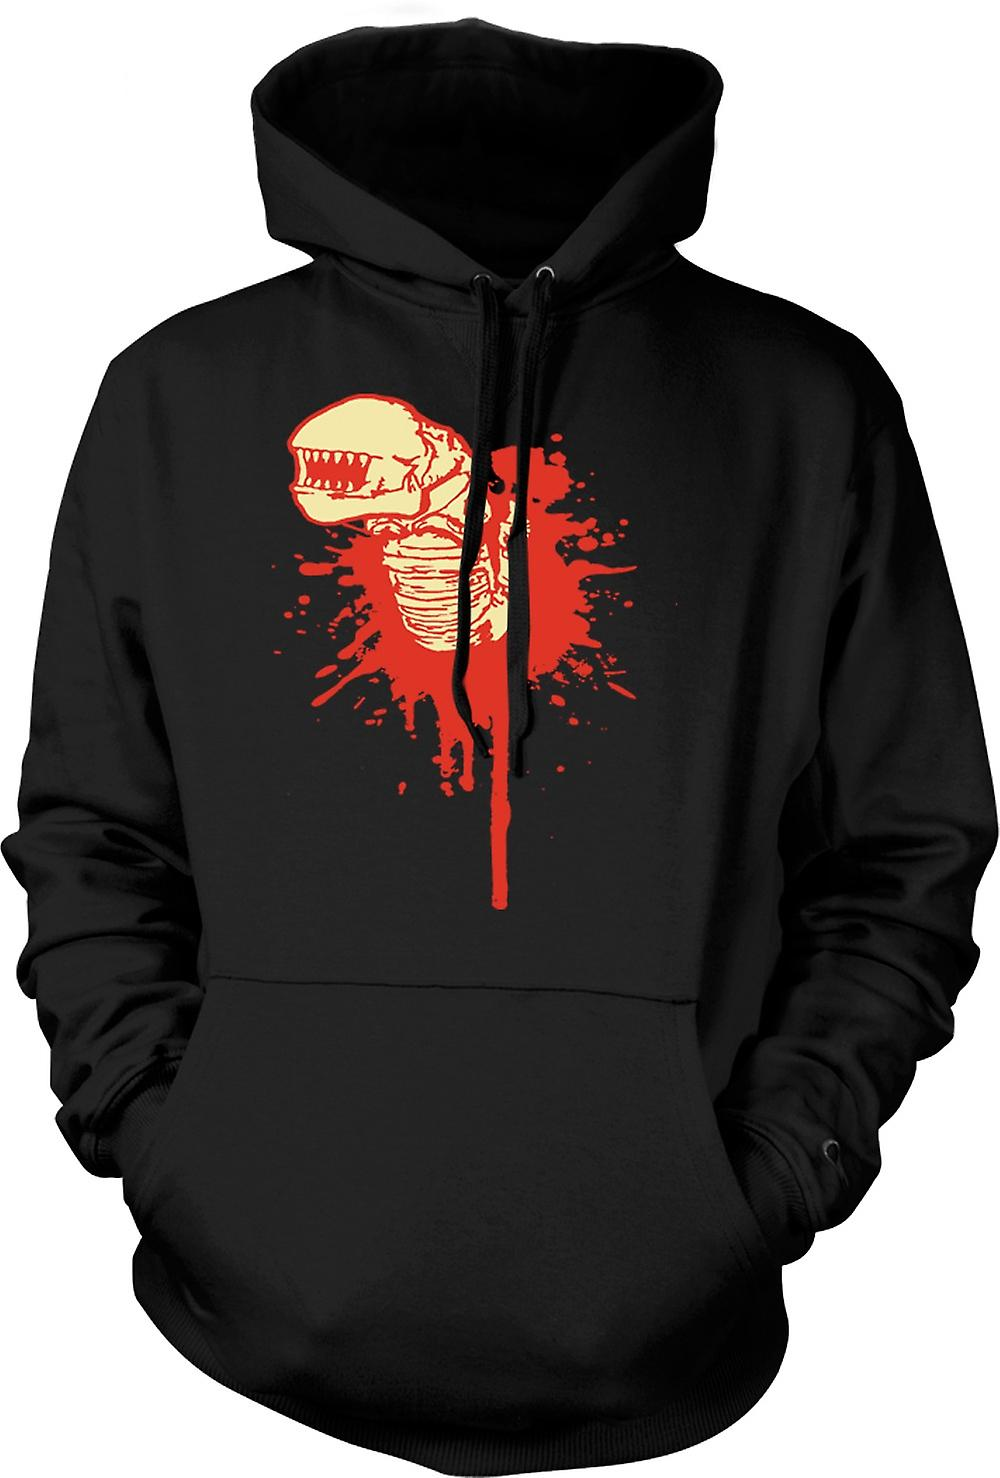 Mens Hoodie - fronte straniero Hugger - Horror - Movie